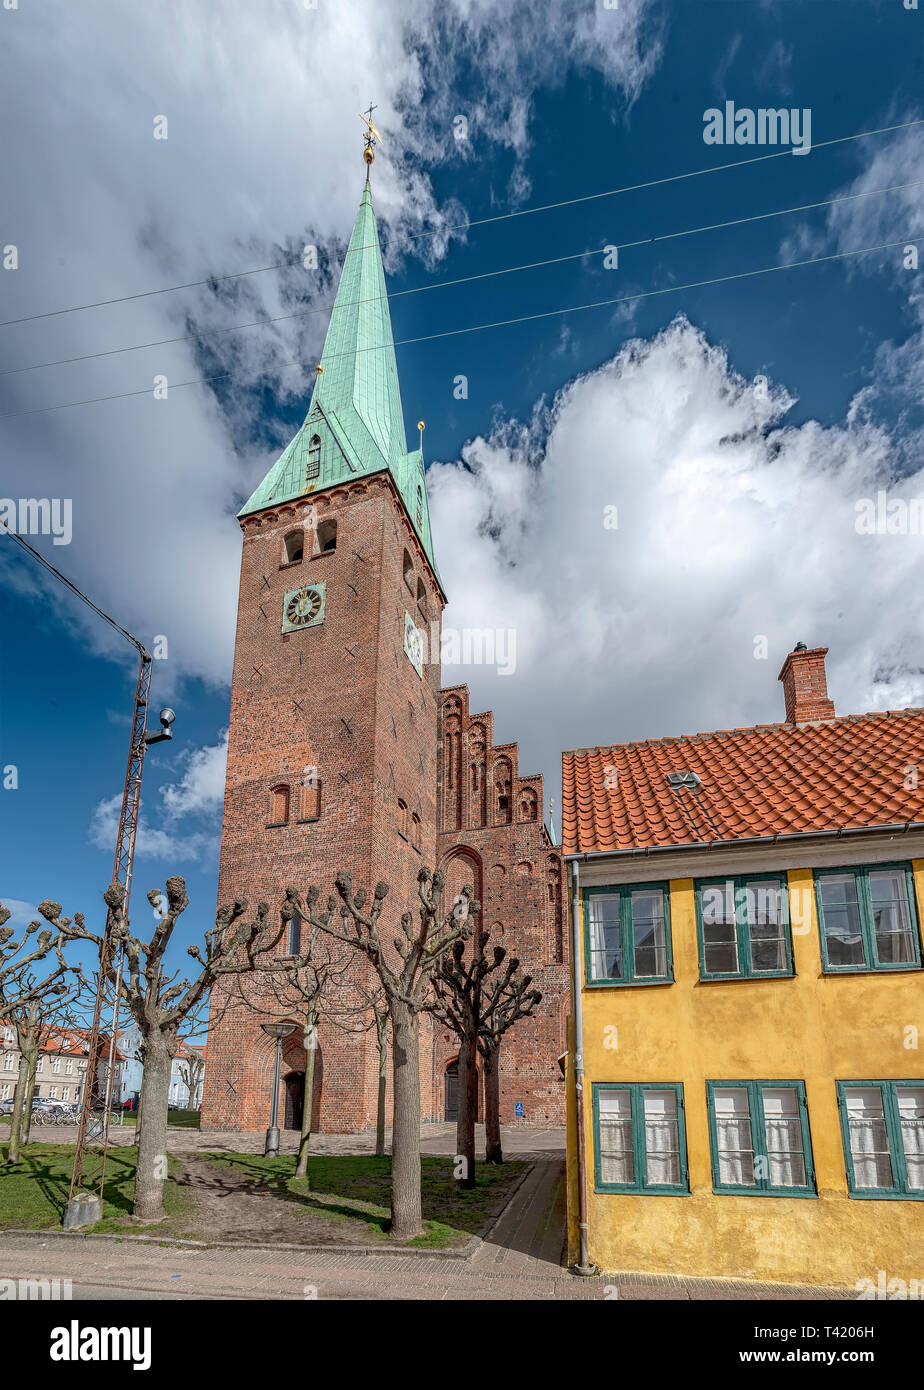 The church of Saint Olaf in the old town of Helsingor in Denmark. - Stock Image